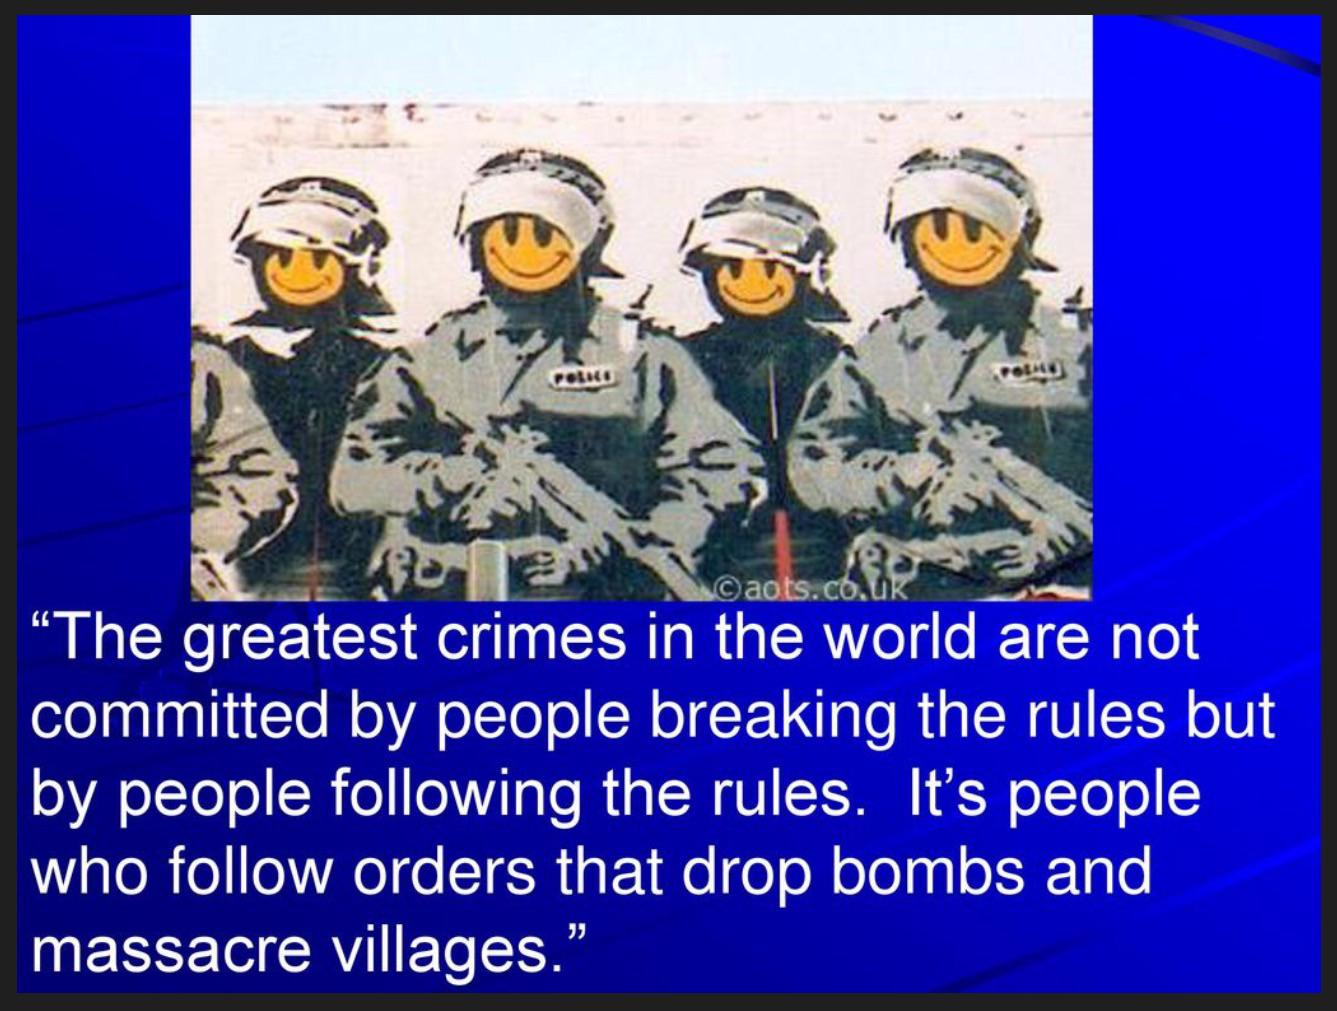 """The greatest crimes in the world are not committed by people breaking the rules but by people following the rules. It's people who follow orders that drop bombs and massacre villages."" ― Banksy, Wall and Piece [1337 x 1011]"